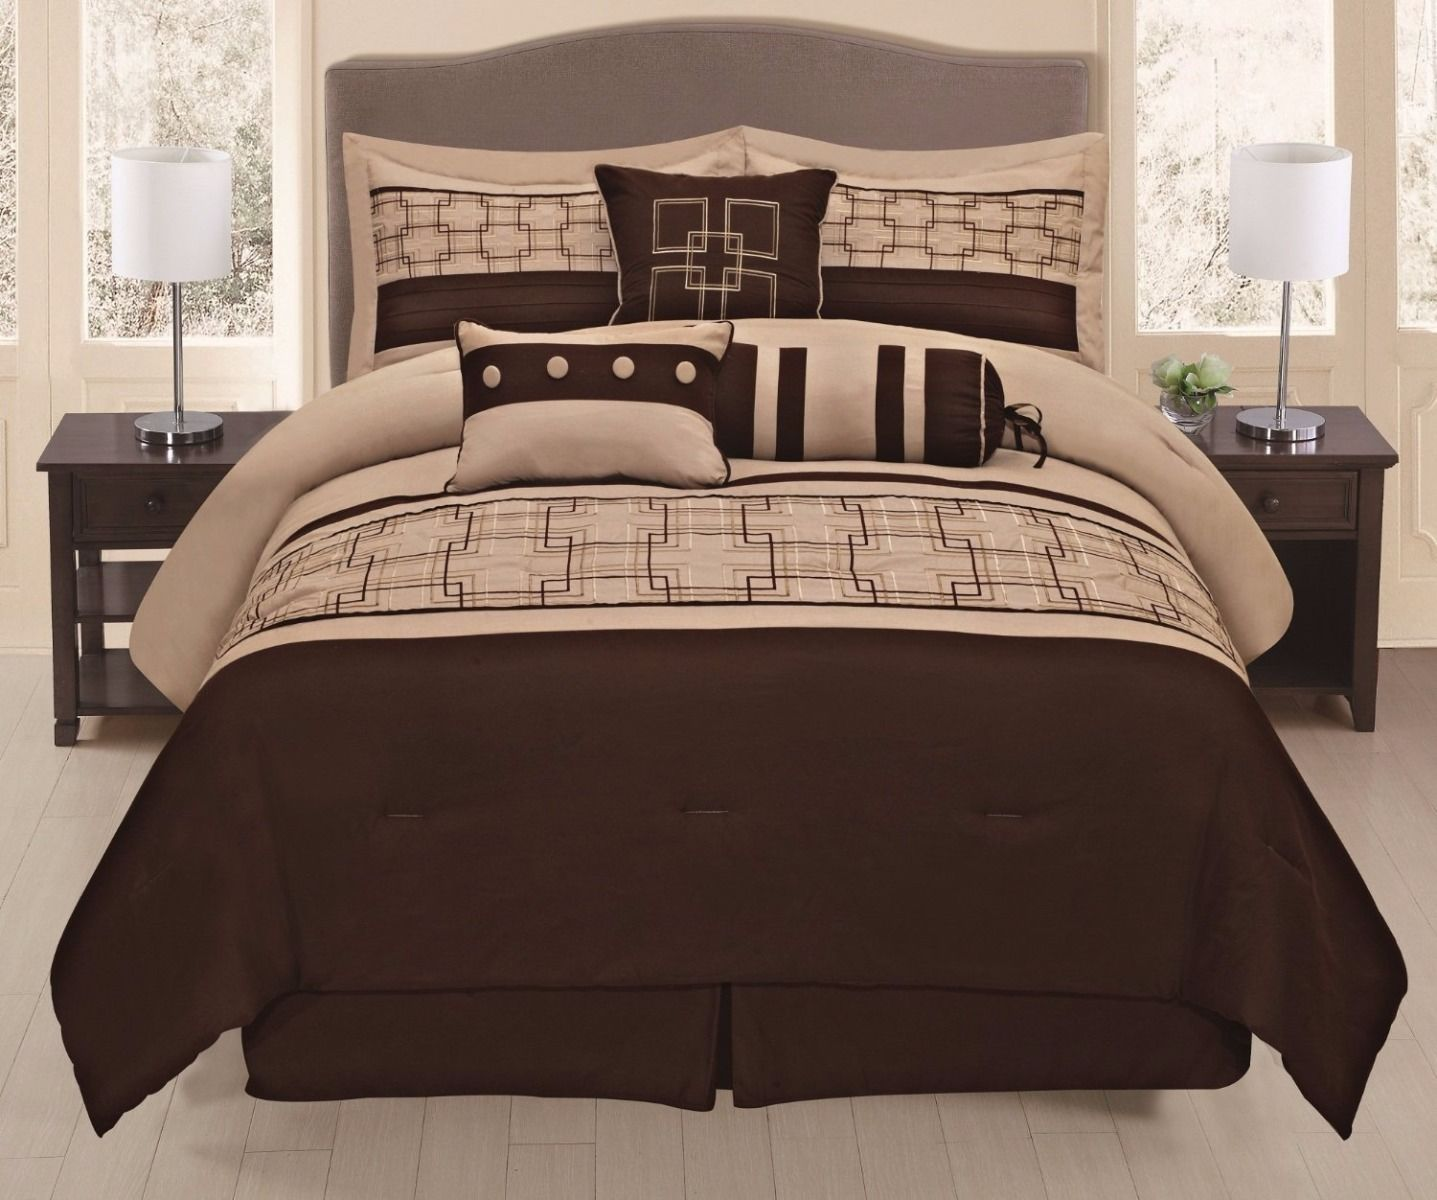 Kohls Bedding | Queen Size Batman Bed Set | Queen Size Bedding Sets